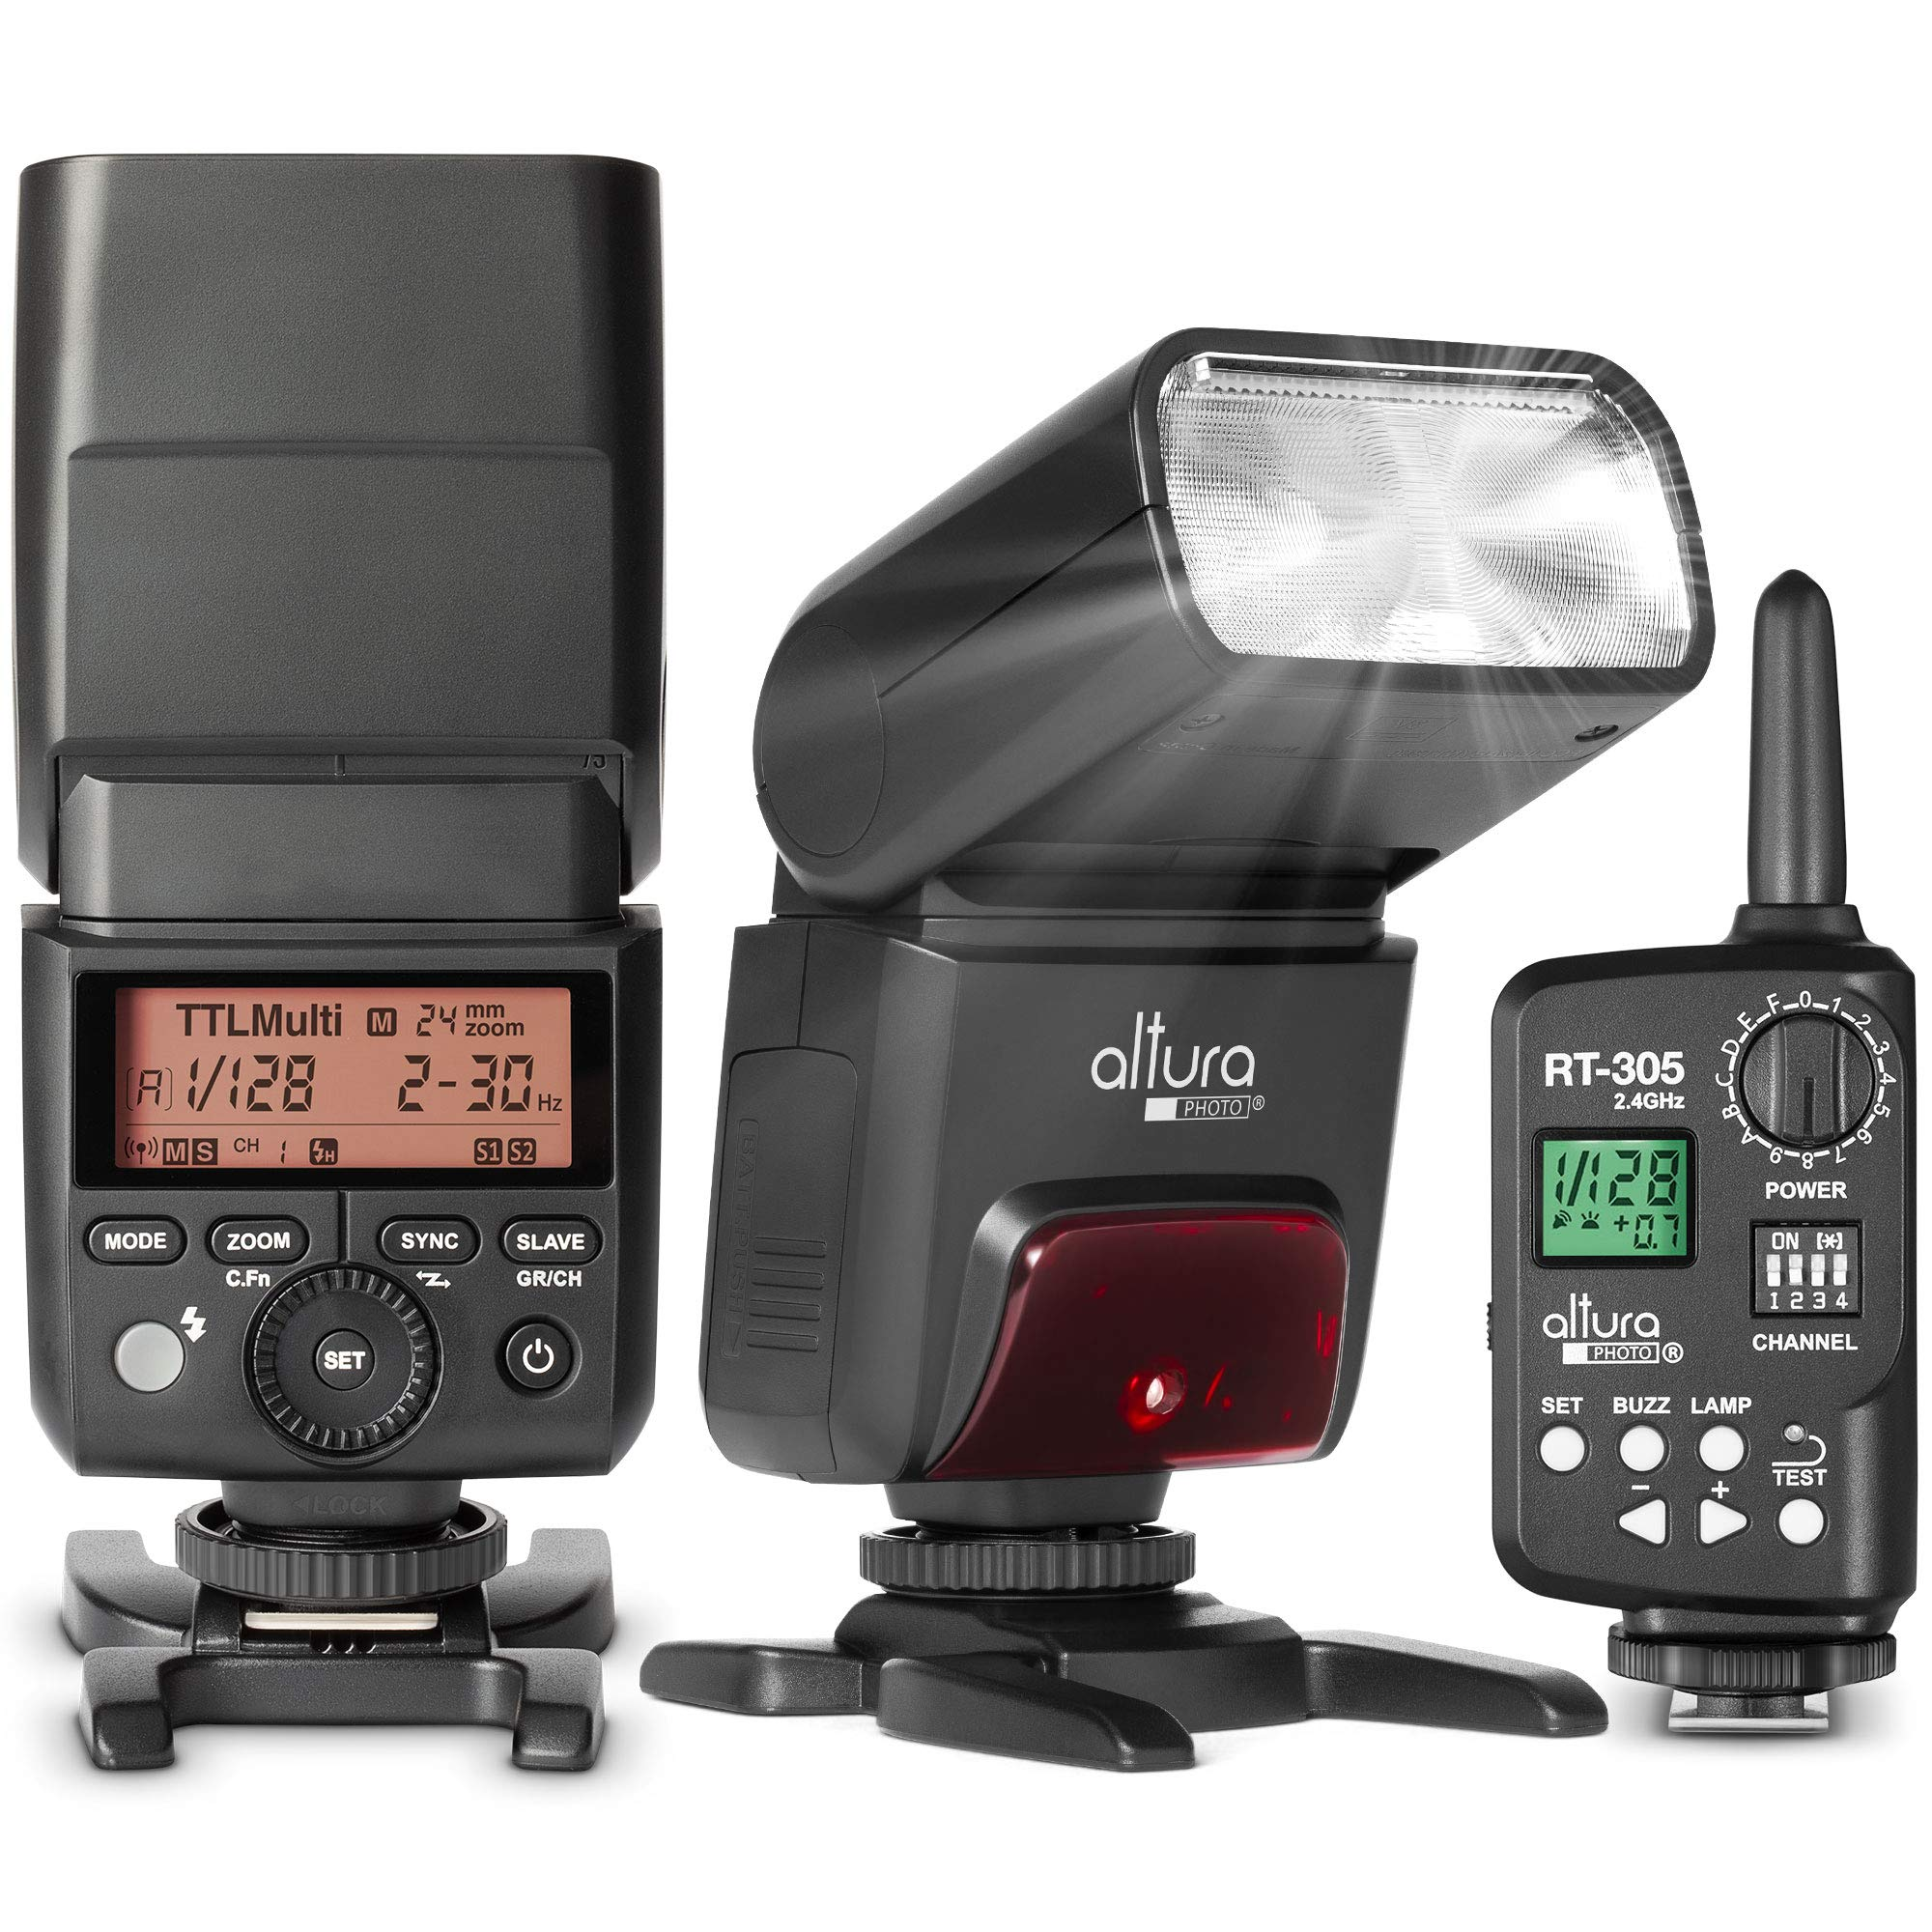 Professional Camera Flash and Wireless Flash Trigger for Sony by Altura Photo - AP-305S & RT-305. 2.4GHz TTL Speedlite for Mirrorless and DSLR